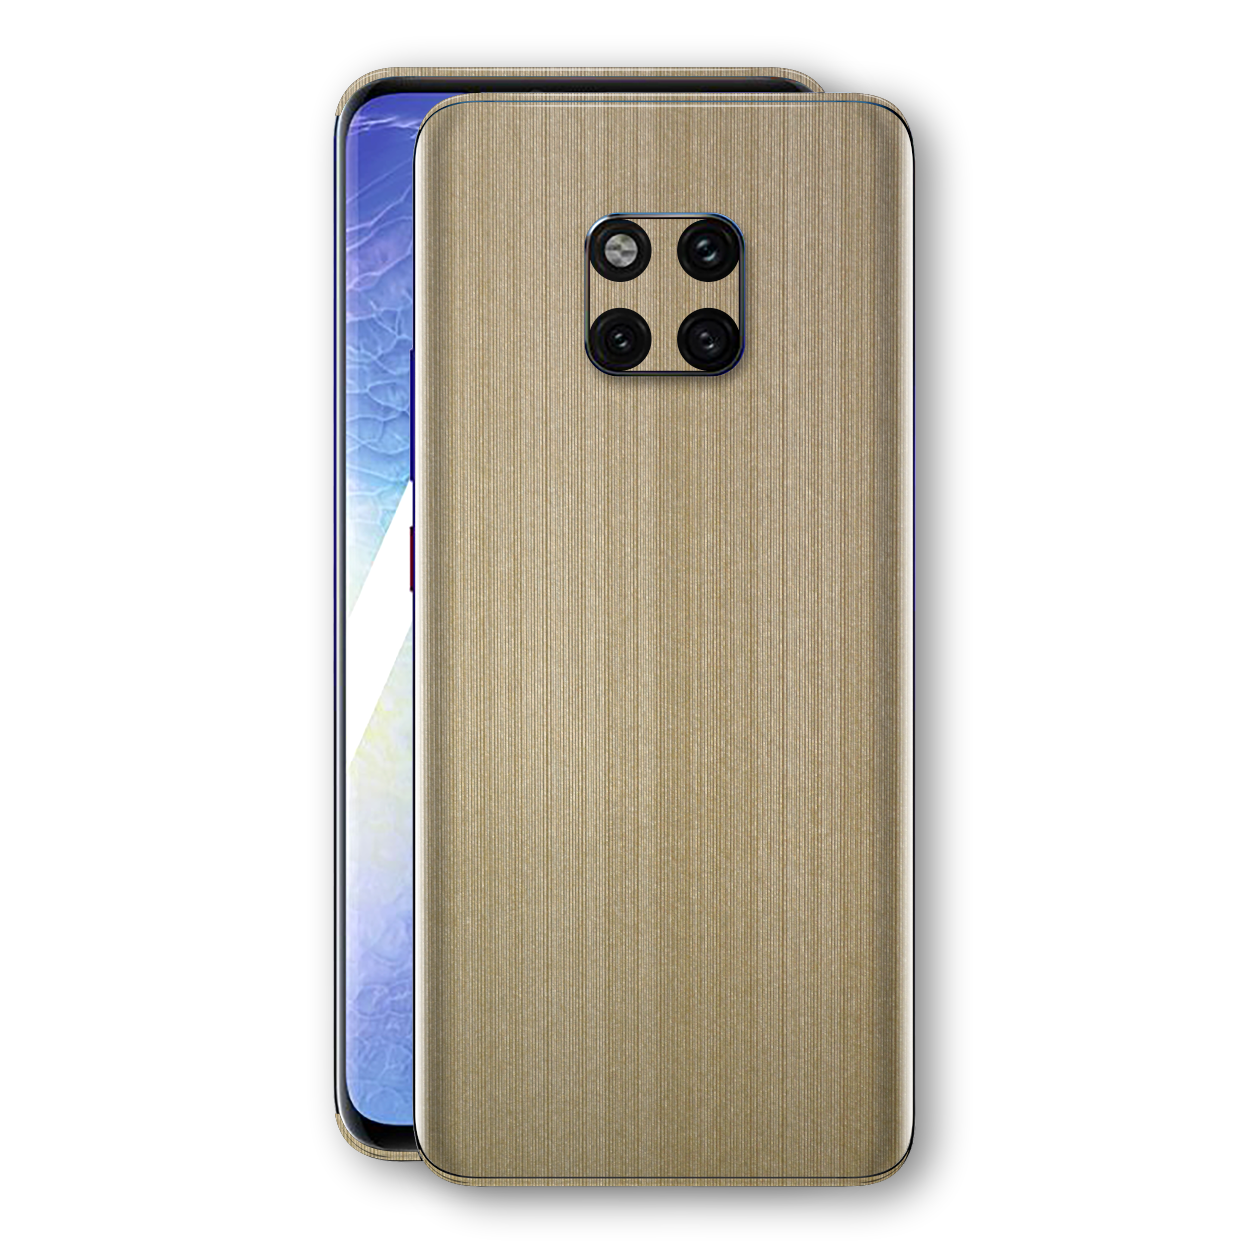 Huawei MATE 20 PRO Premium Brushed Champagne Gold Metallic Metal Skin, Decal, Wrap, Protector, Cover by EasySkinz | EasySkinz.com